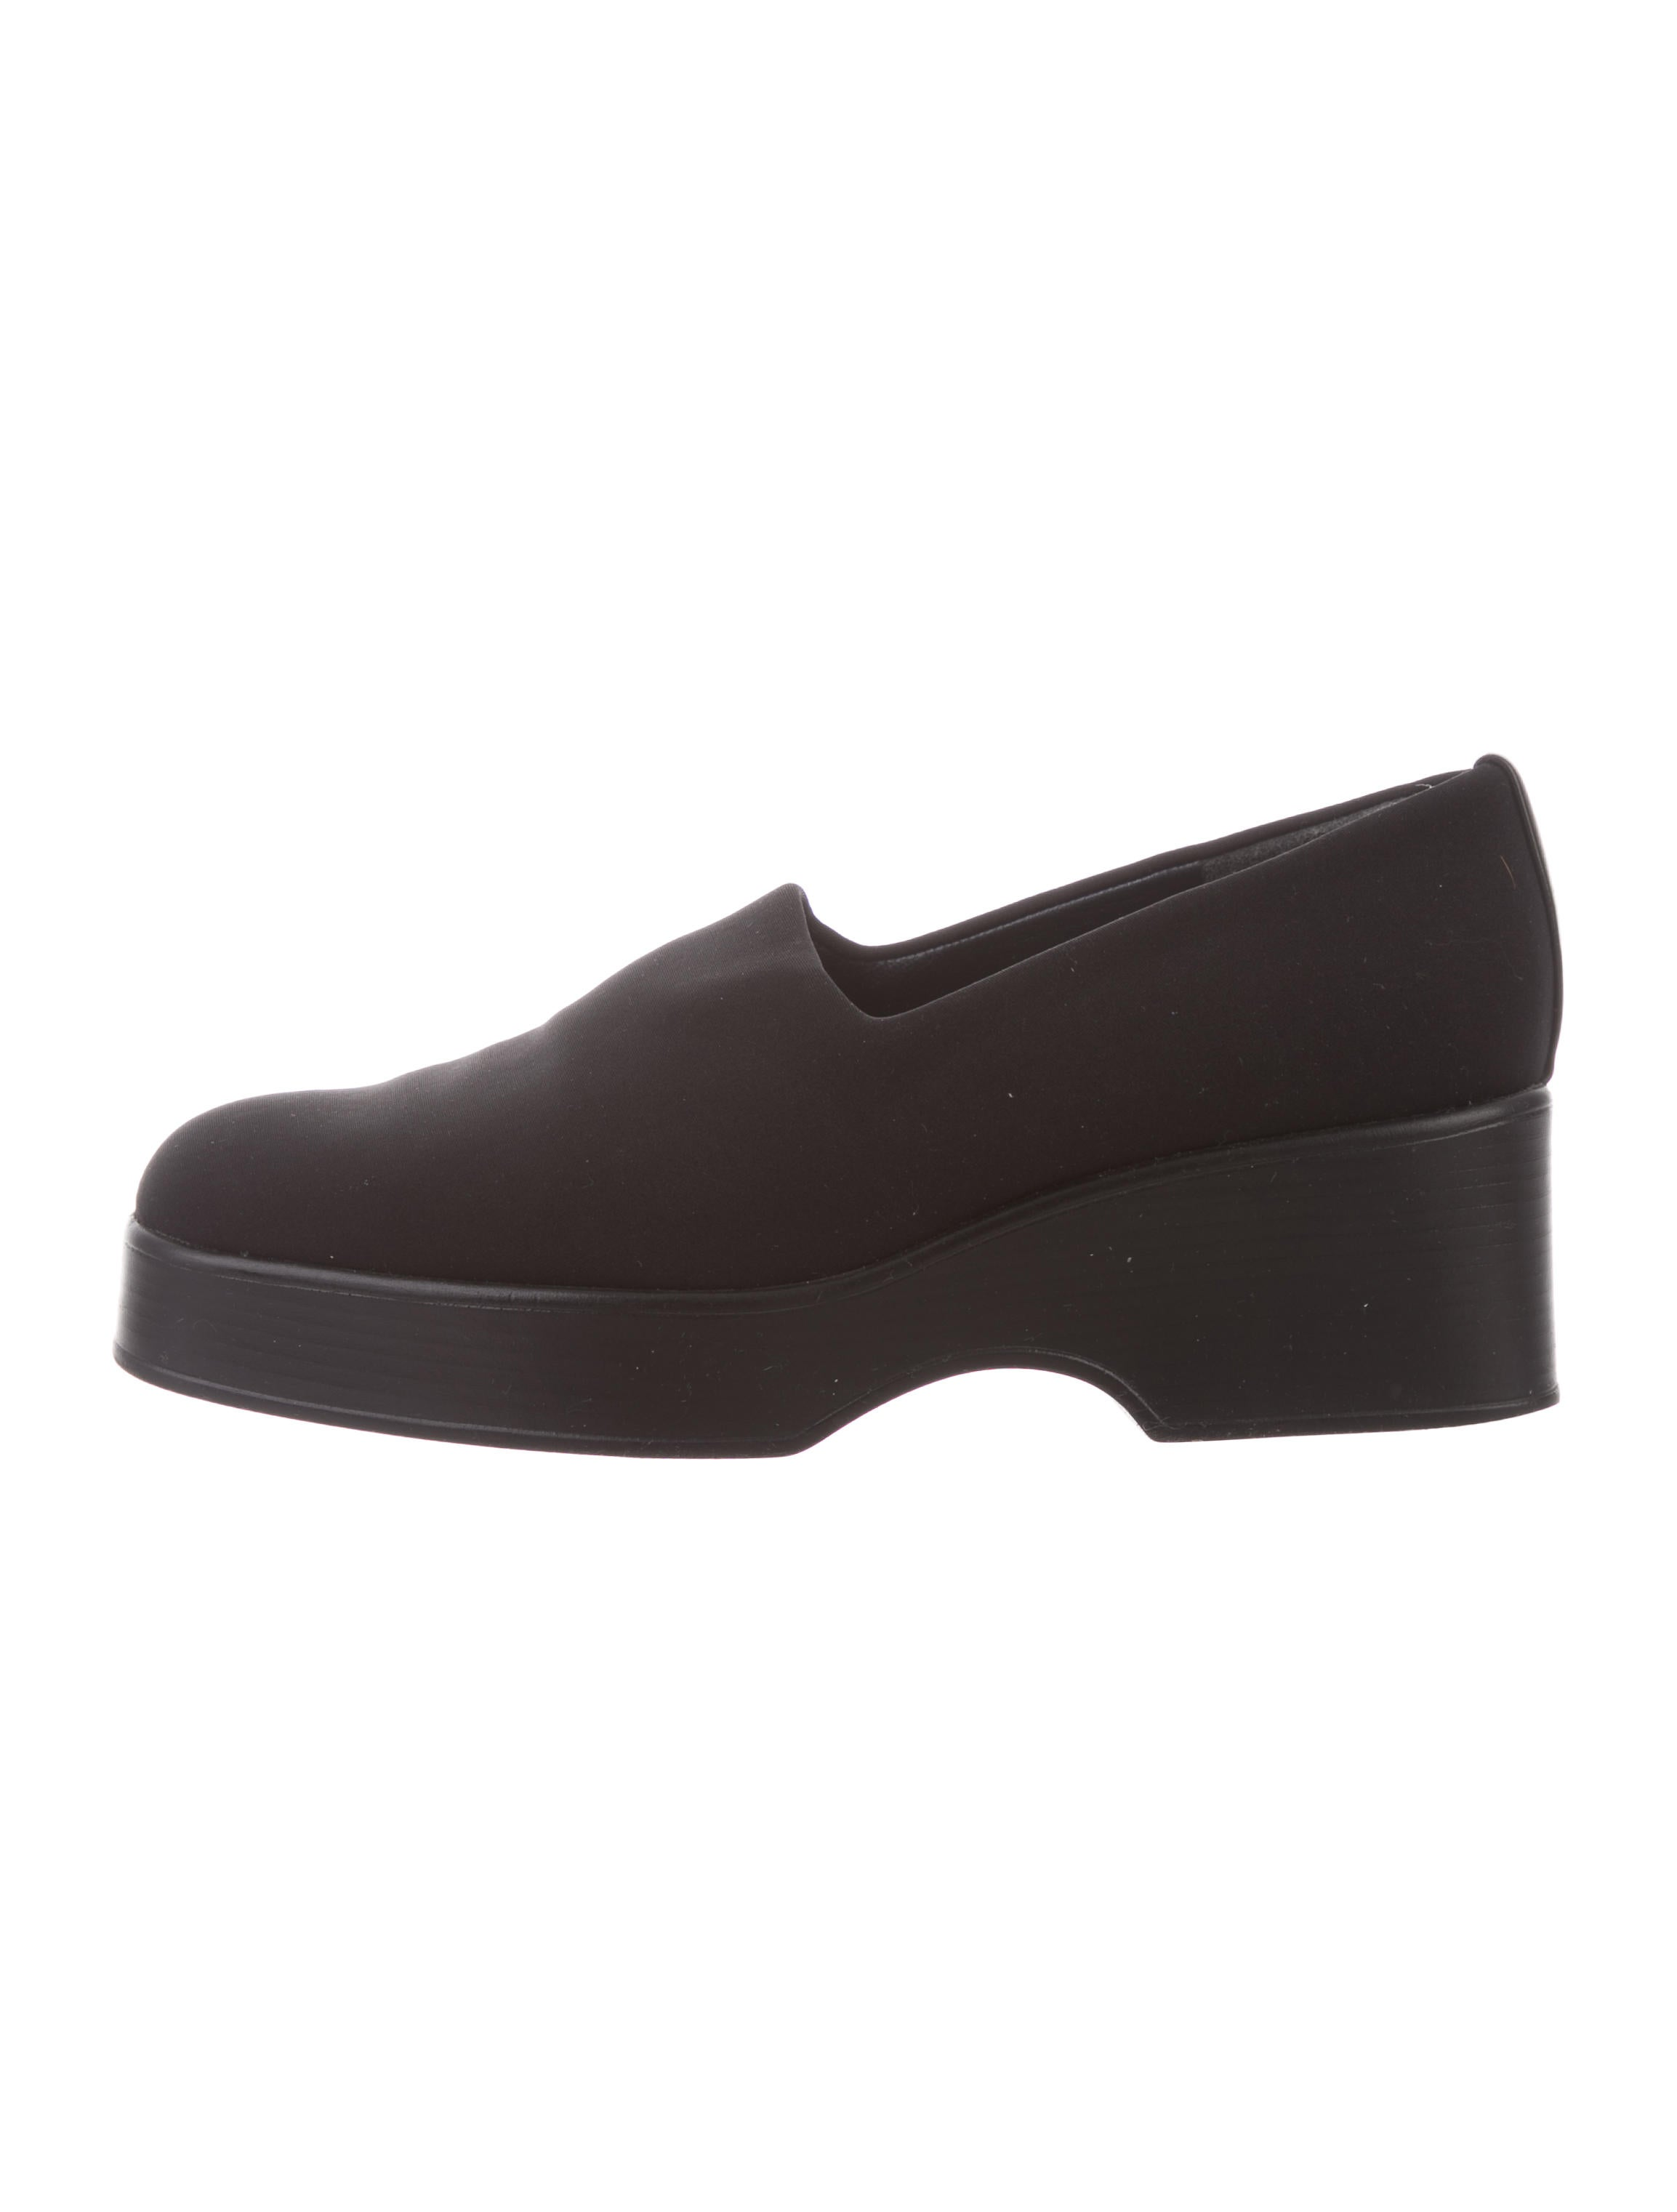 sale free shipping really sale online Stuart Weitzman Round-Toe Flatform Loafers sneakernews cheap online sale outlet store y1op9